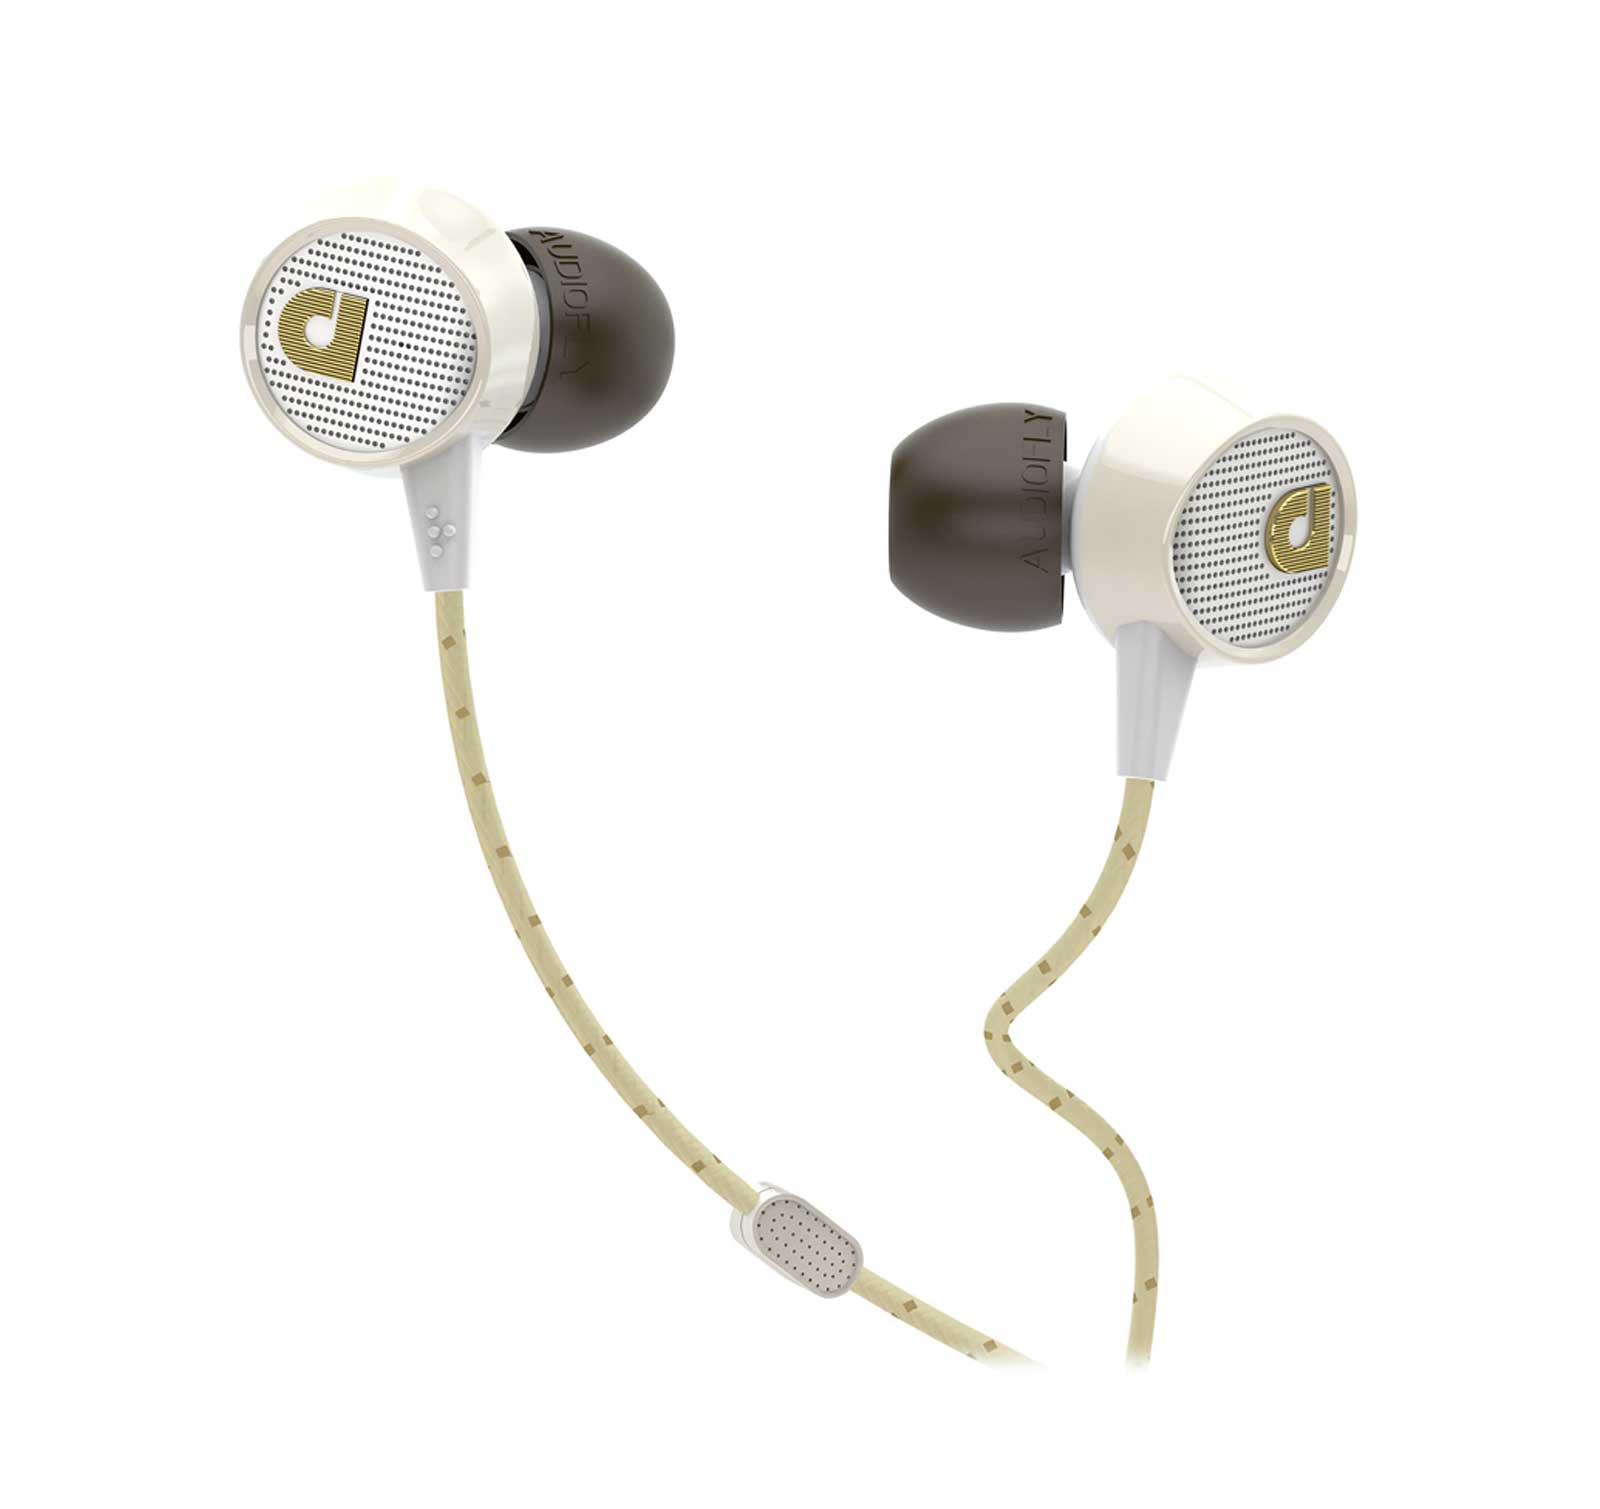 Audiofly AF56 Edison Vintage White In-ear headphones with Clear-Talk Mic